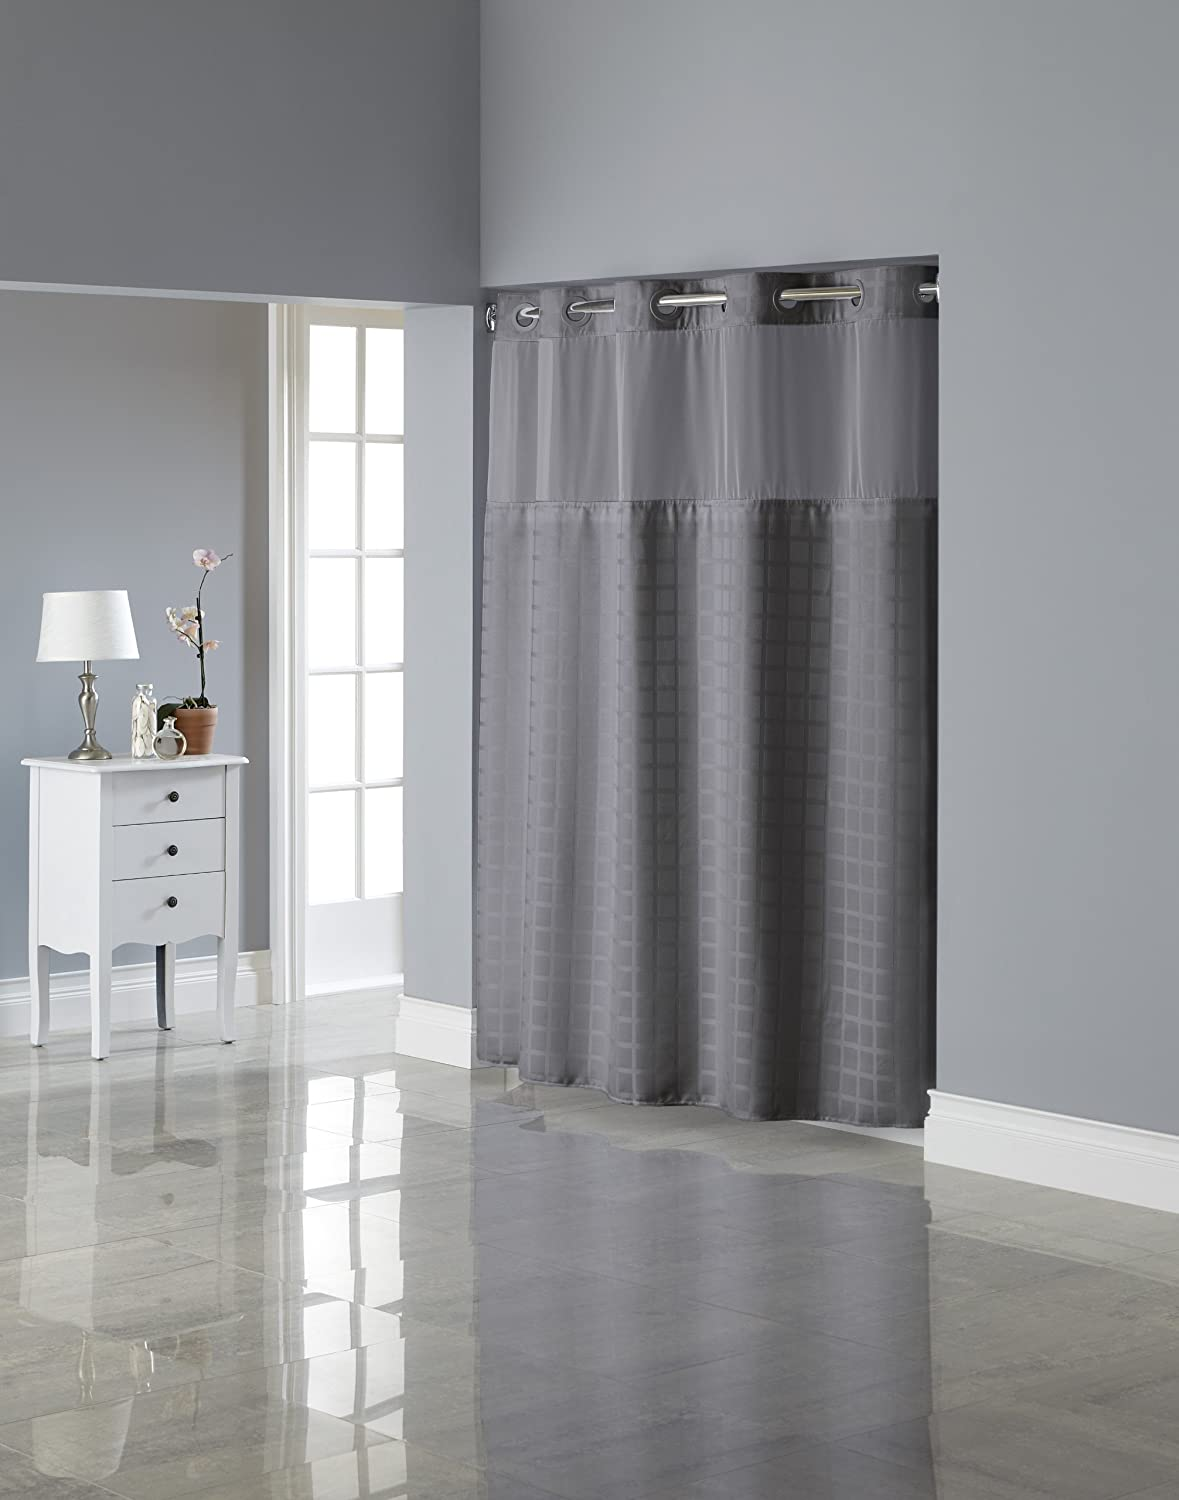 Hookless shower curtain - Amazon Com Hookless Rbh27my919 Square Tile Jacquard Shower Curtain With Snap In Fabric Liner Moonlight Blue Home Kitchen